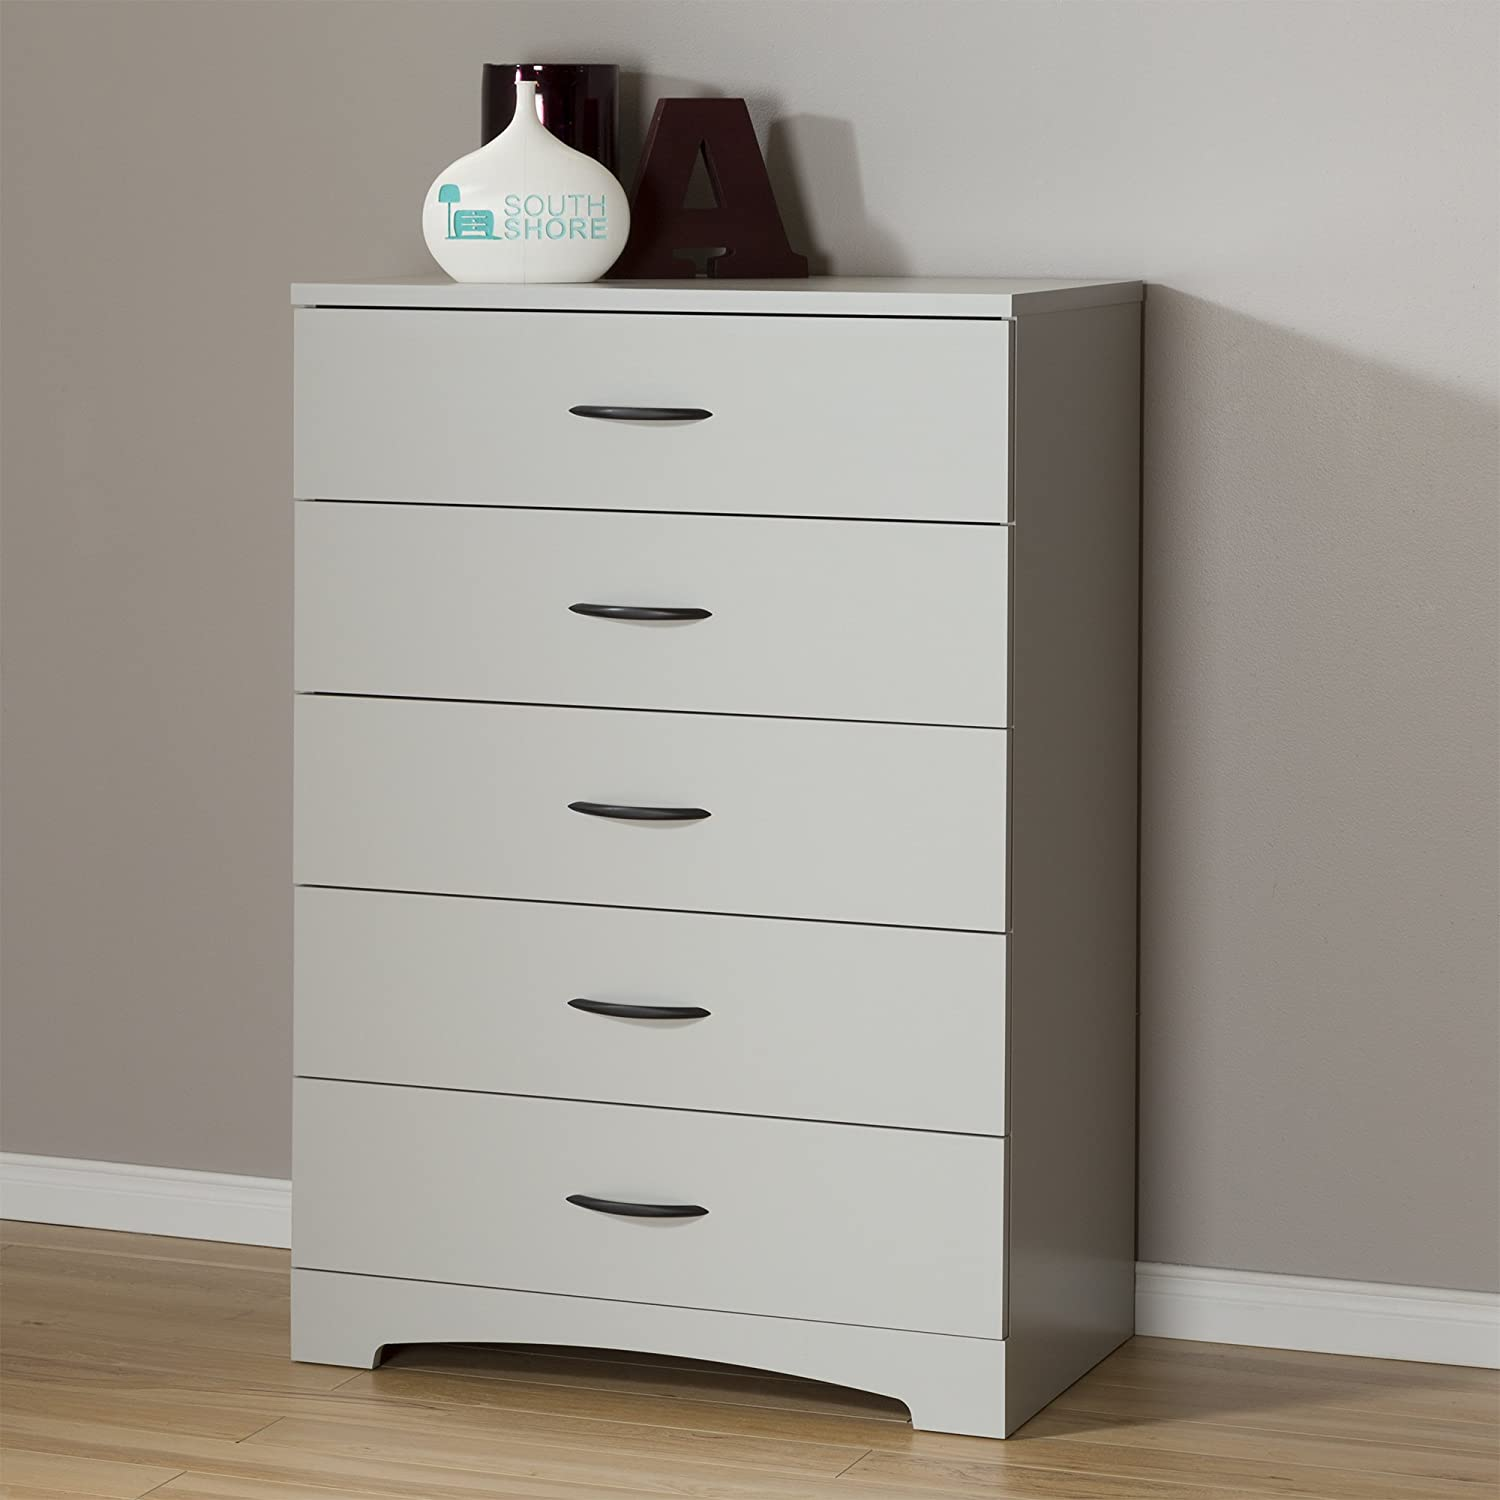 South Shore Step One 5-Drawer Dresser, Soft Gray with Matte Nickel Handles